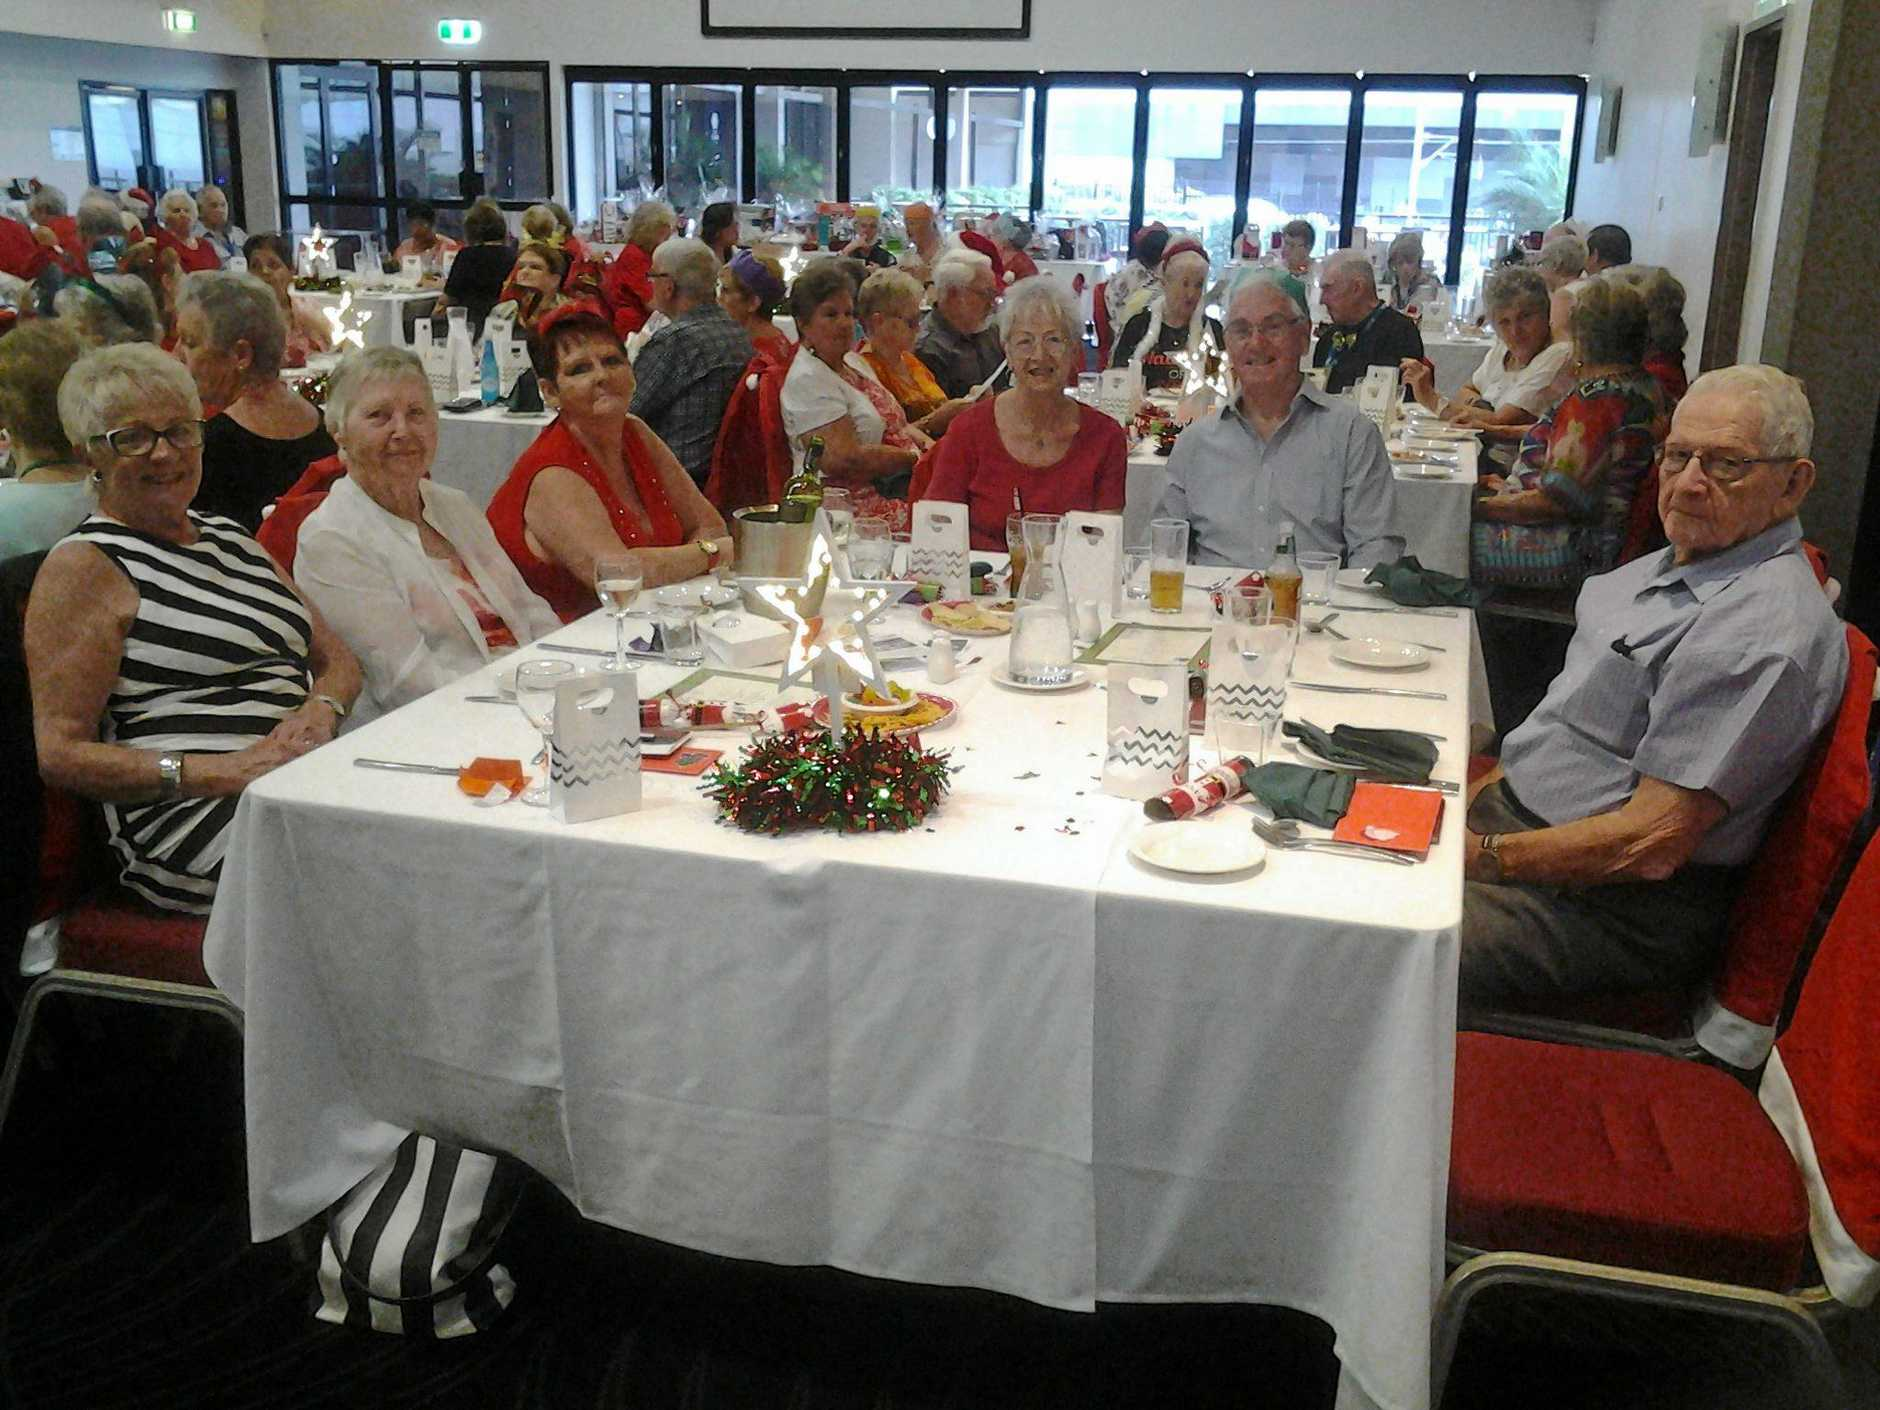 FESTIVE FIFTY CLUB: The Forest Lake Fifty Plus Club enjoyed wonderful Christmas celebrations with members. New members are always welcome, meeting on the third Friday of the month at The Lion, Pine Road, Richlands.